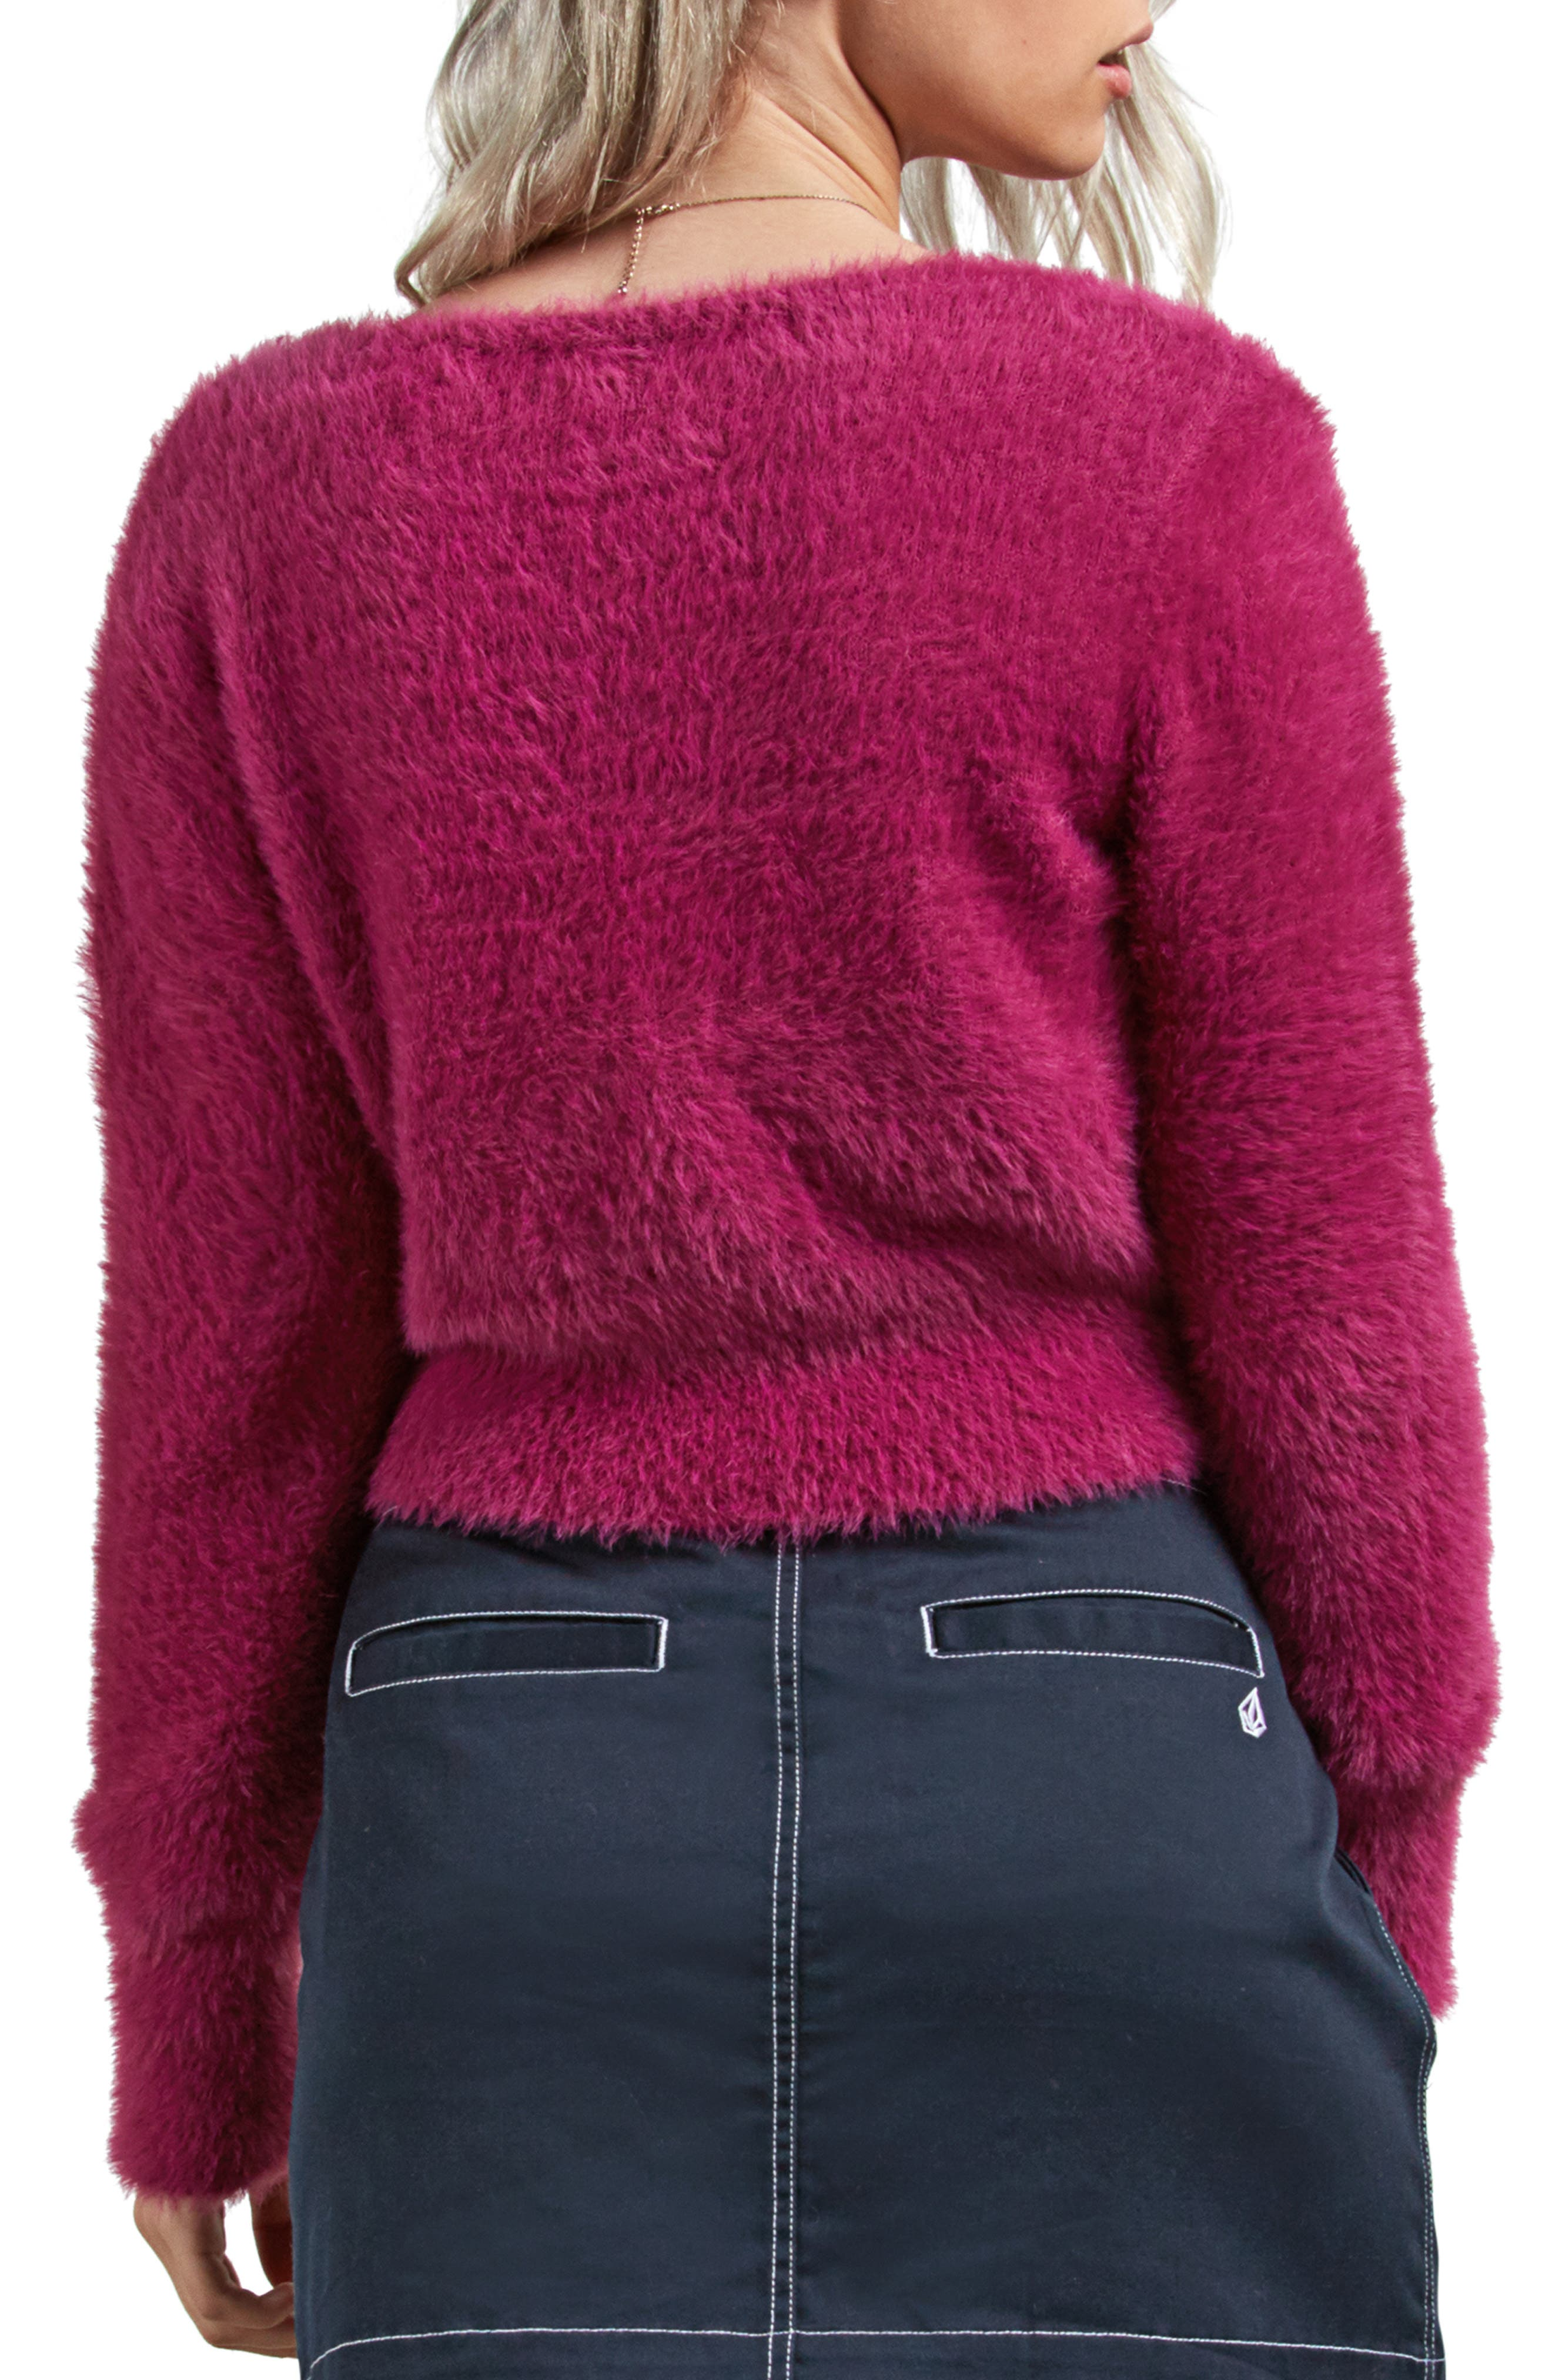 Clued 2 You Sweater,                             Alternate thumbnail 2, color,                             500